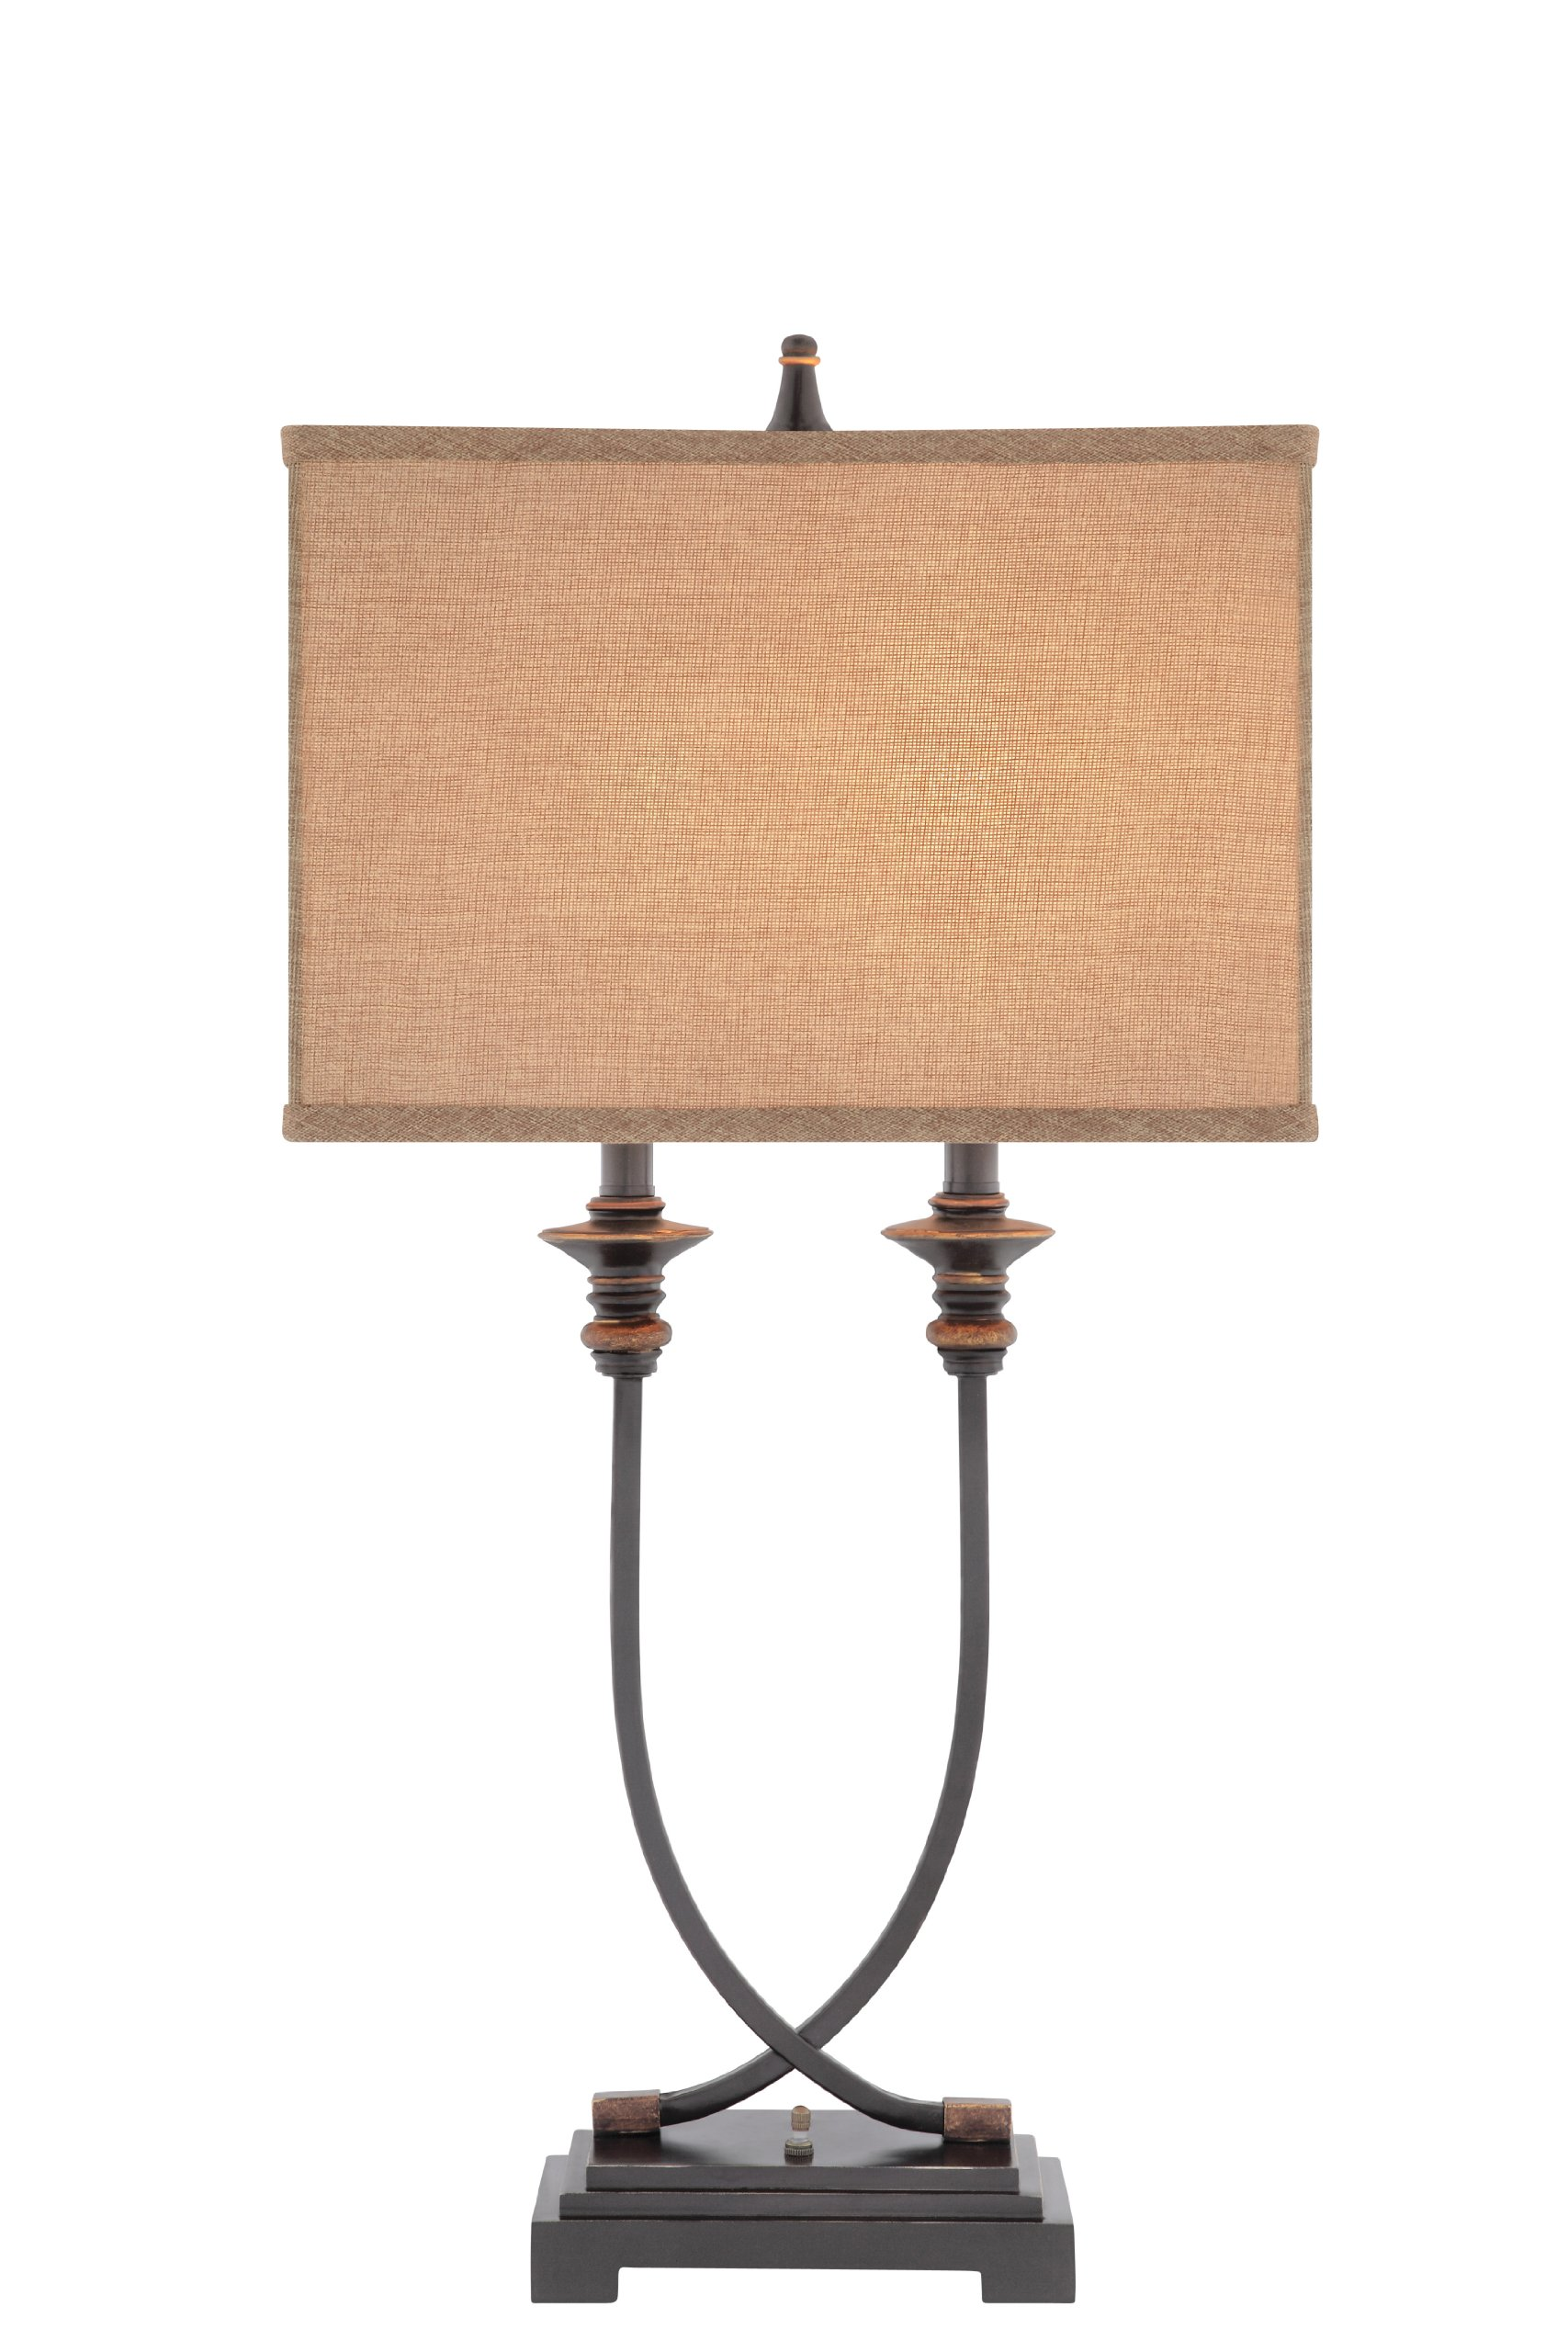 Catalina 19090-000 31.5-Inch Metal and Resin Table Lamp with Oil-Rubbed Bronze Finish and Linen Softback Shade